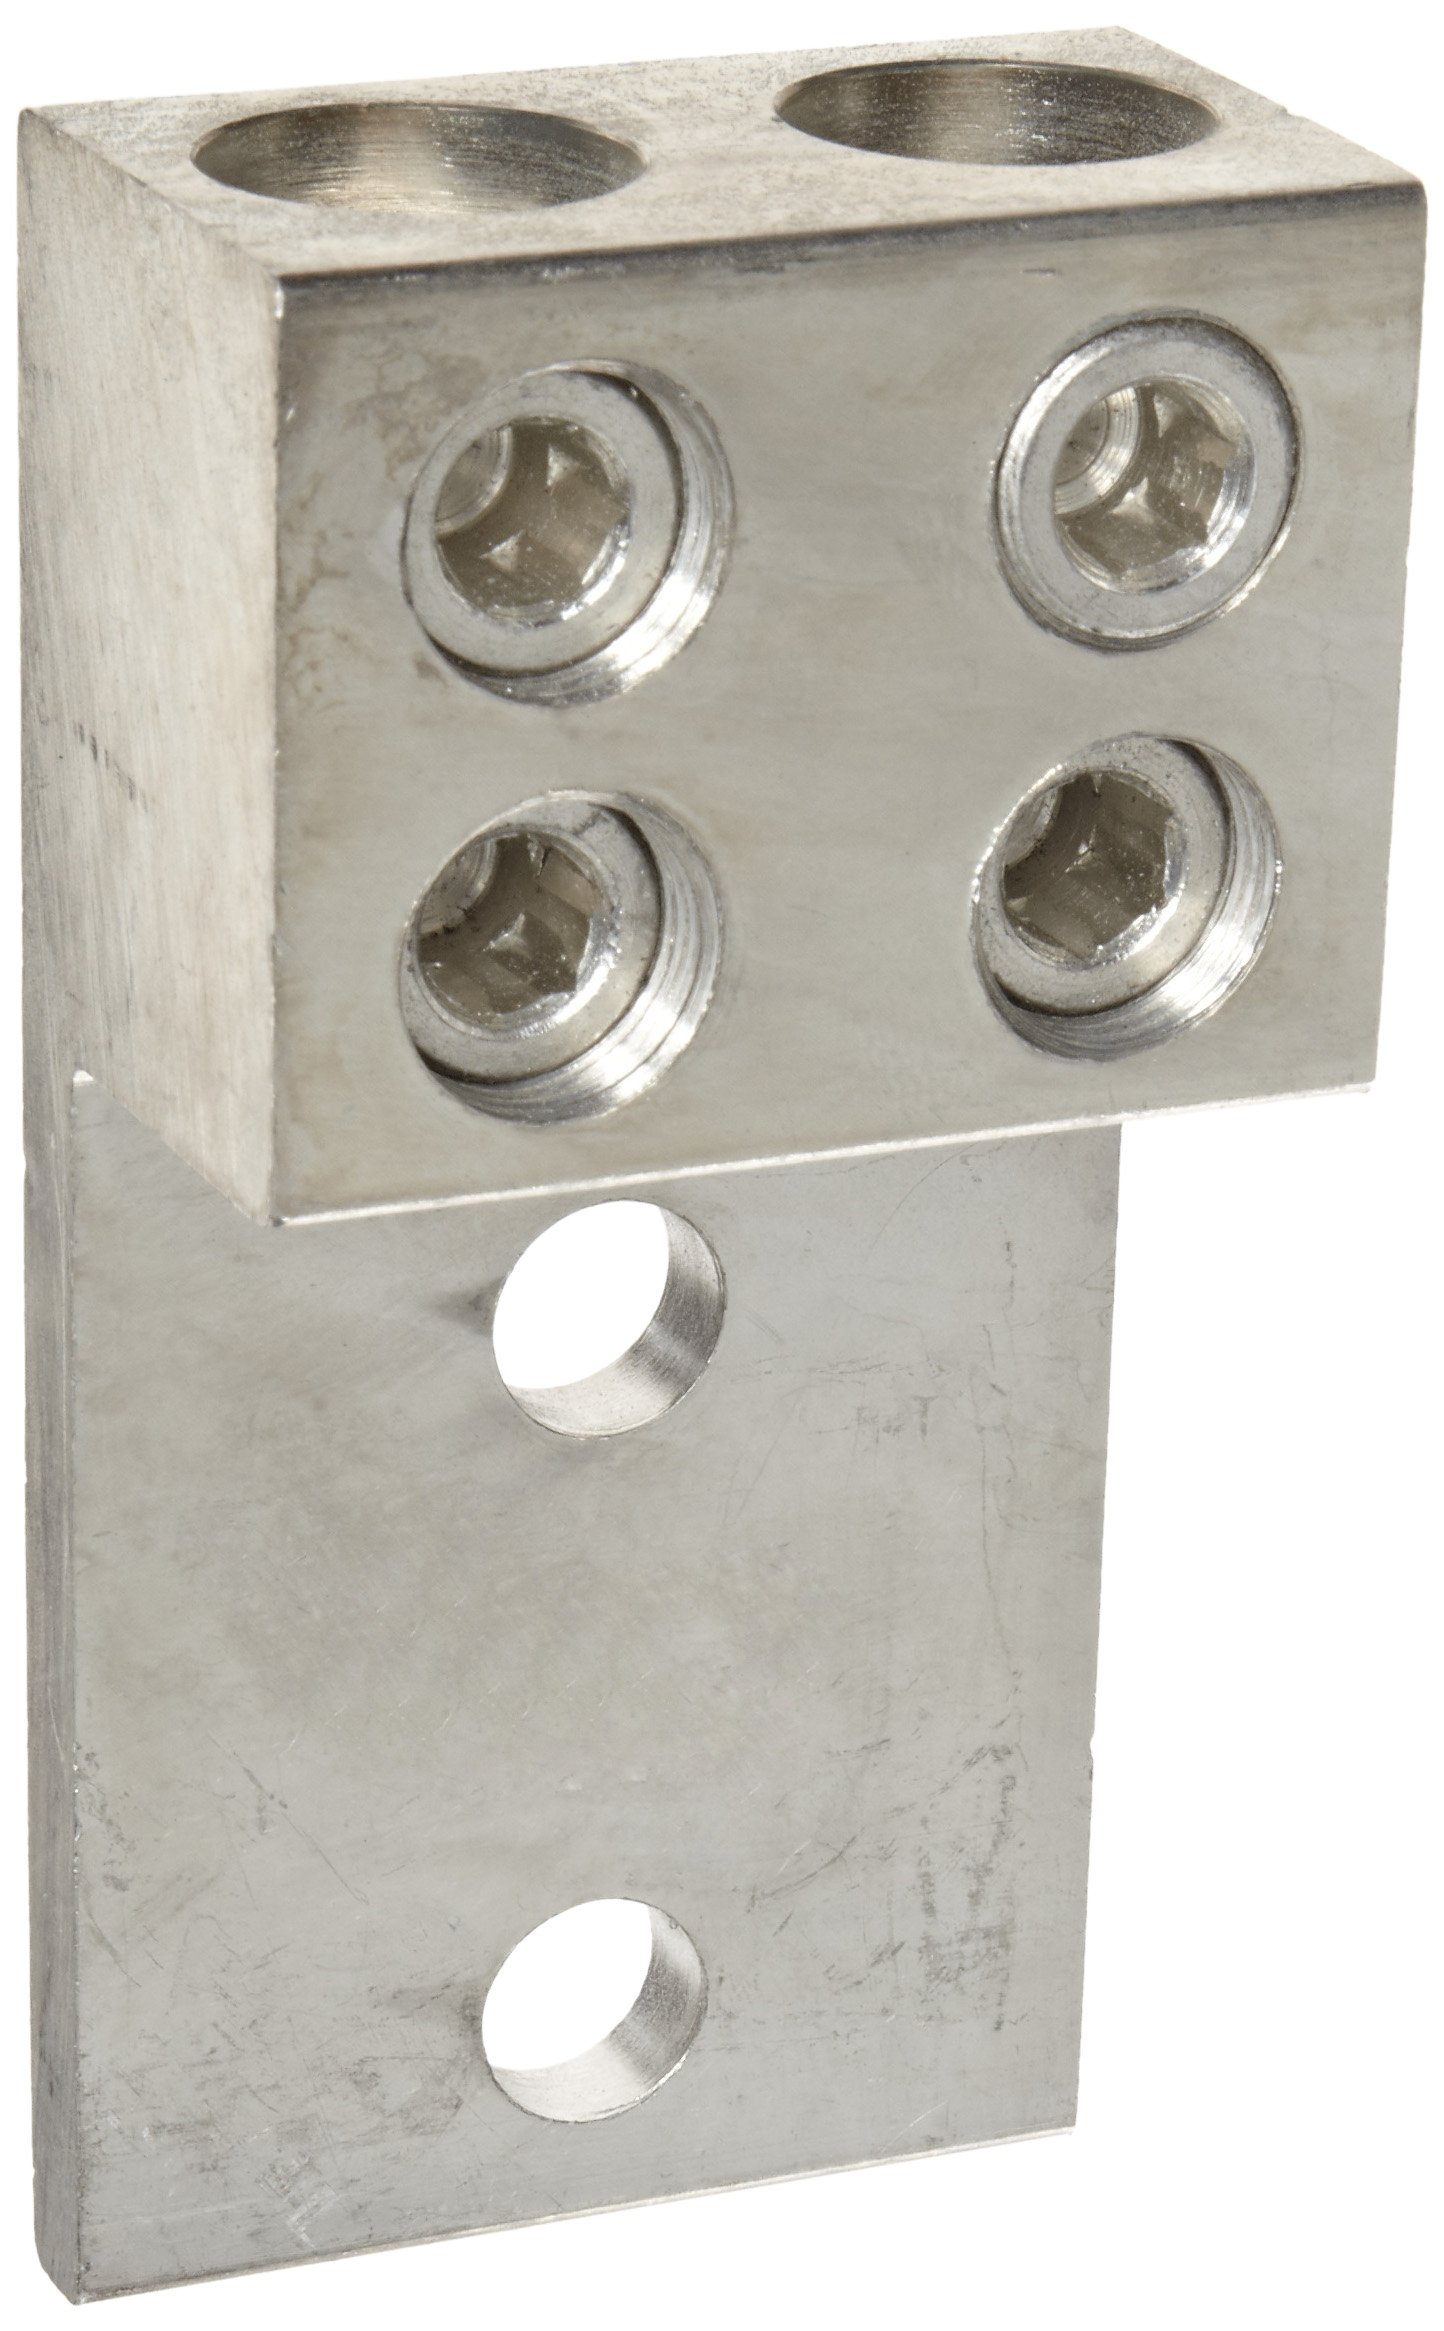 Morris Products 90951 Mechanical Lug, Two Conductors, Two Hole Mount, Aluminum, 600 AWG, 600mcm - 4SOL. Wire Range